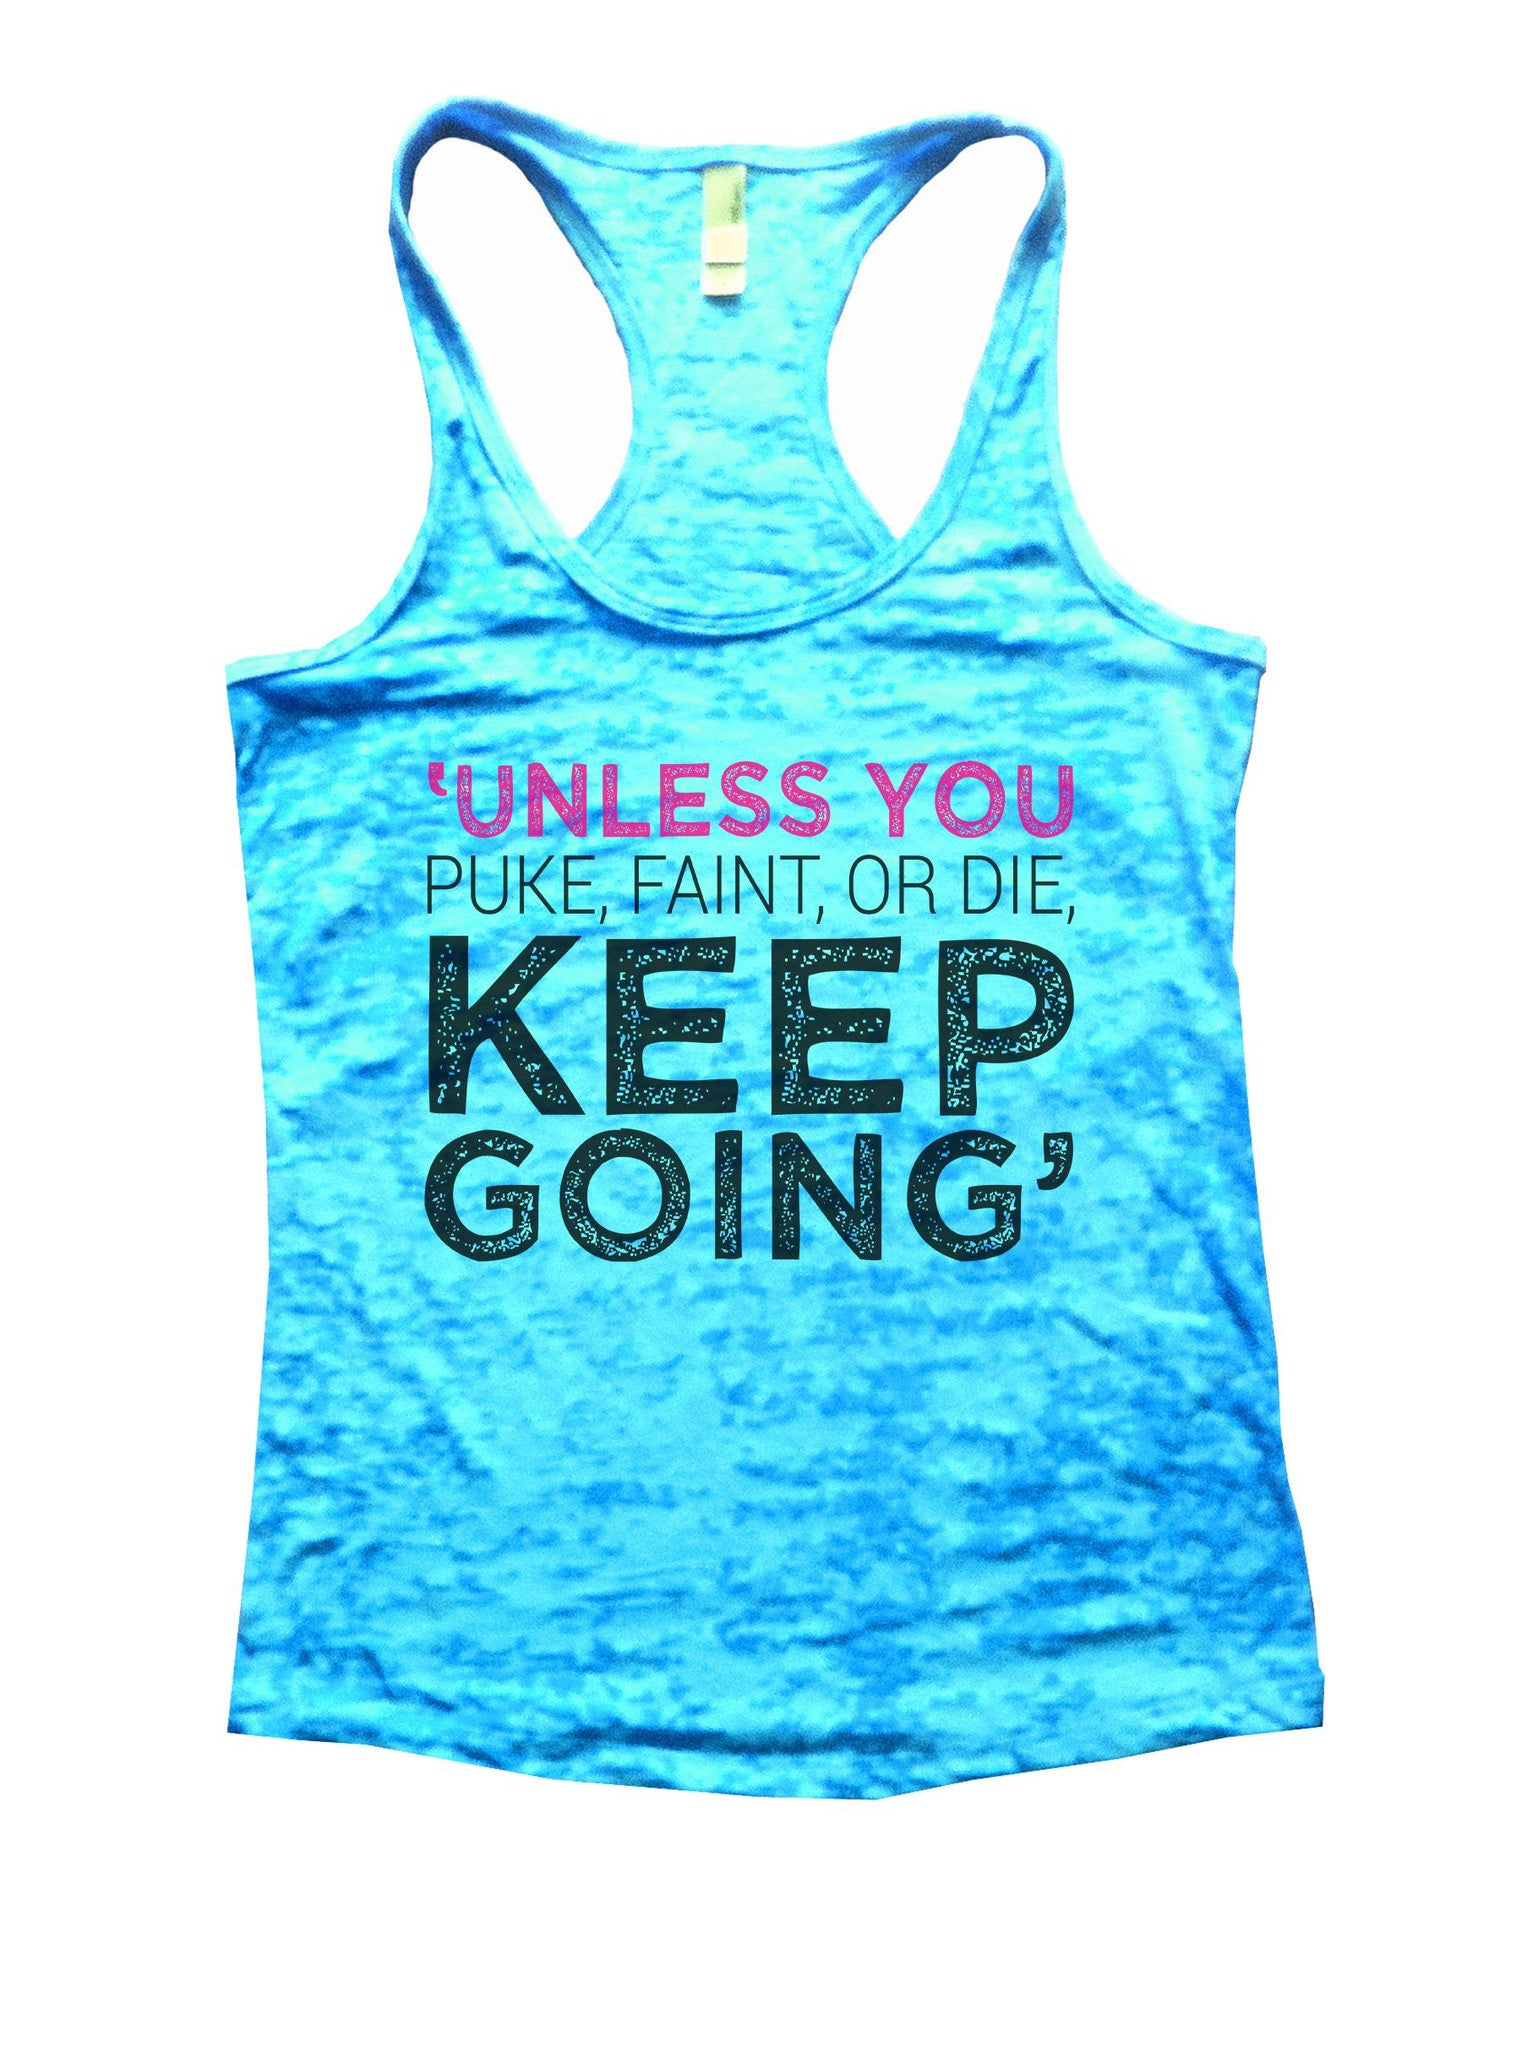 Unless You Puke, Faint, Or Die. Keep Going' Burnout Tank Top By BurnoutTankTops.com - 1104 - Funny Shirts Tank Tops Burnouts and Triblends  - 4